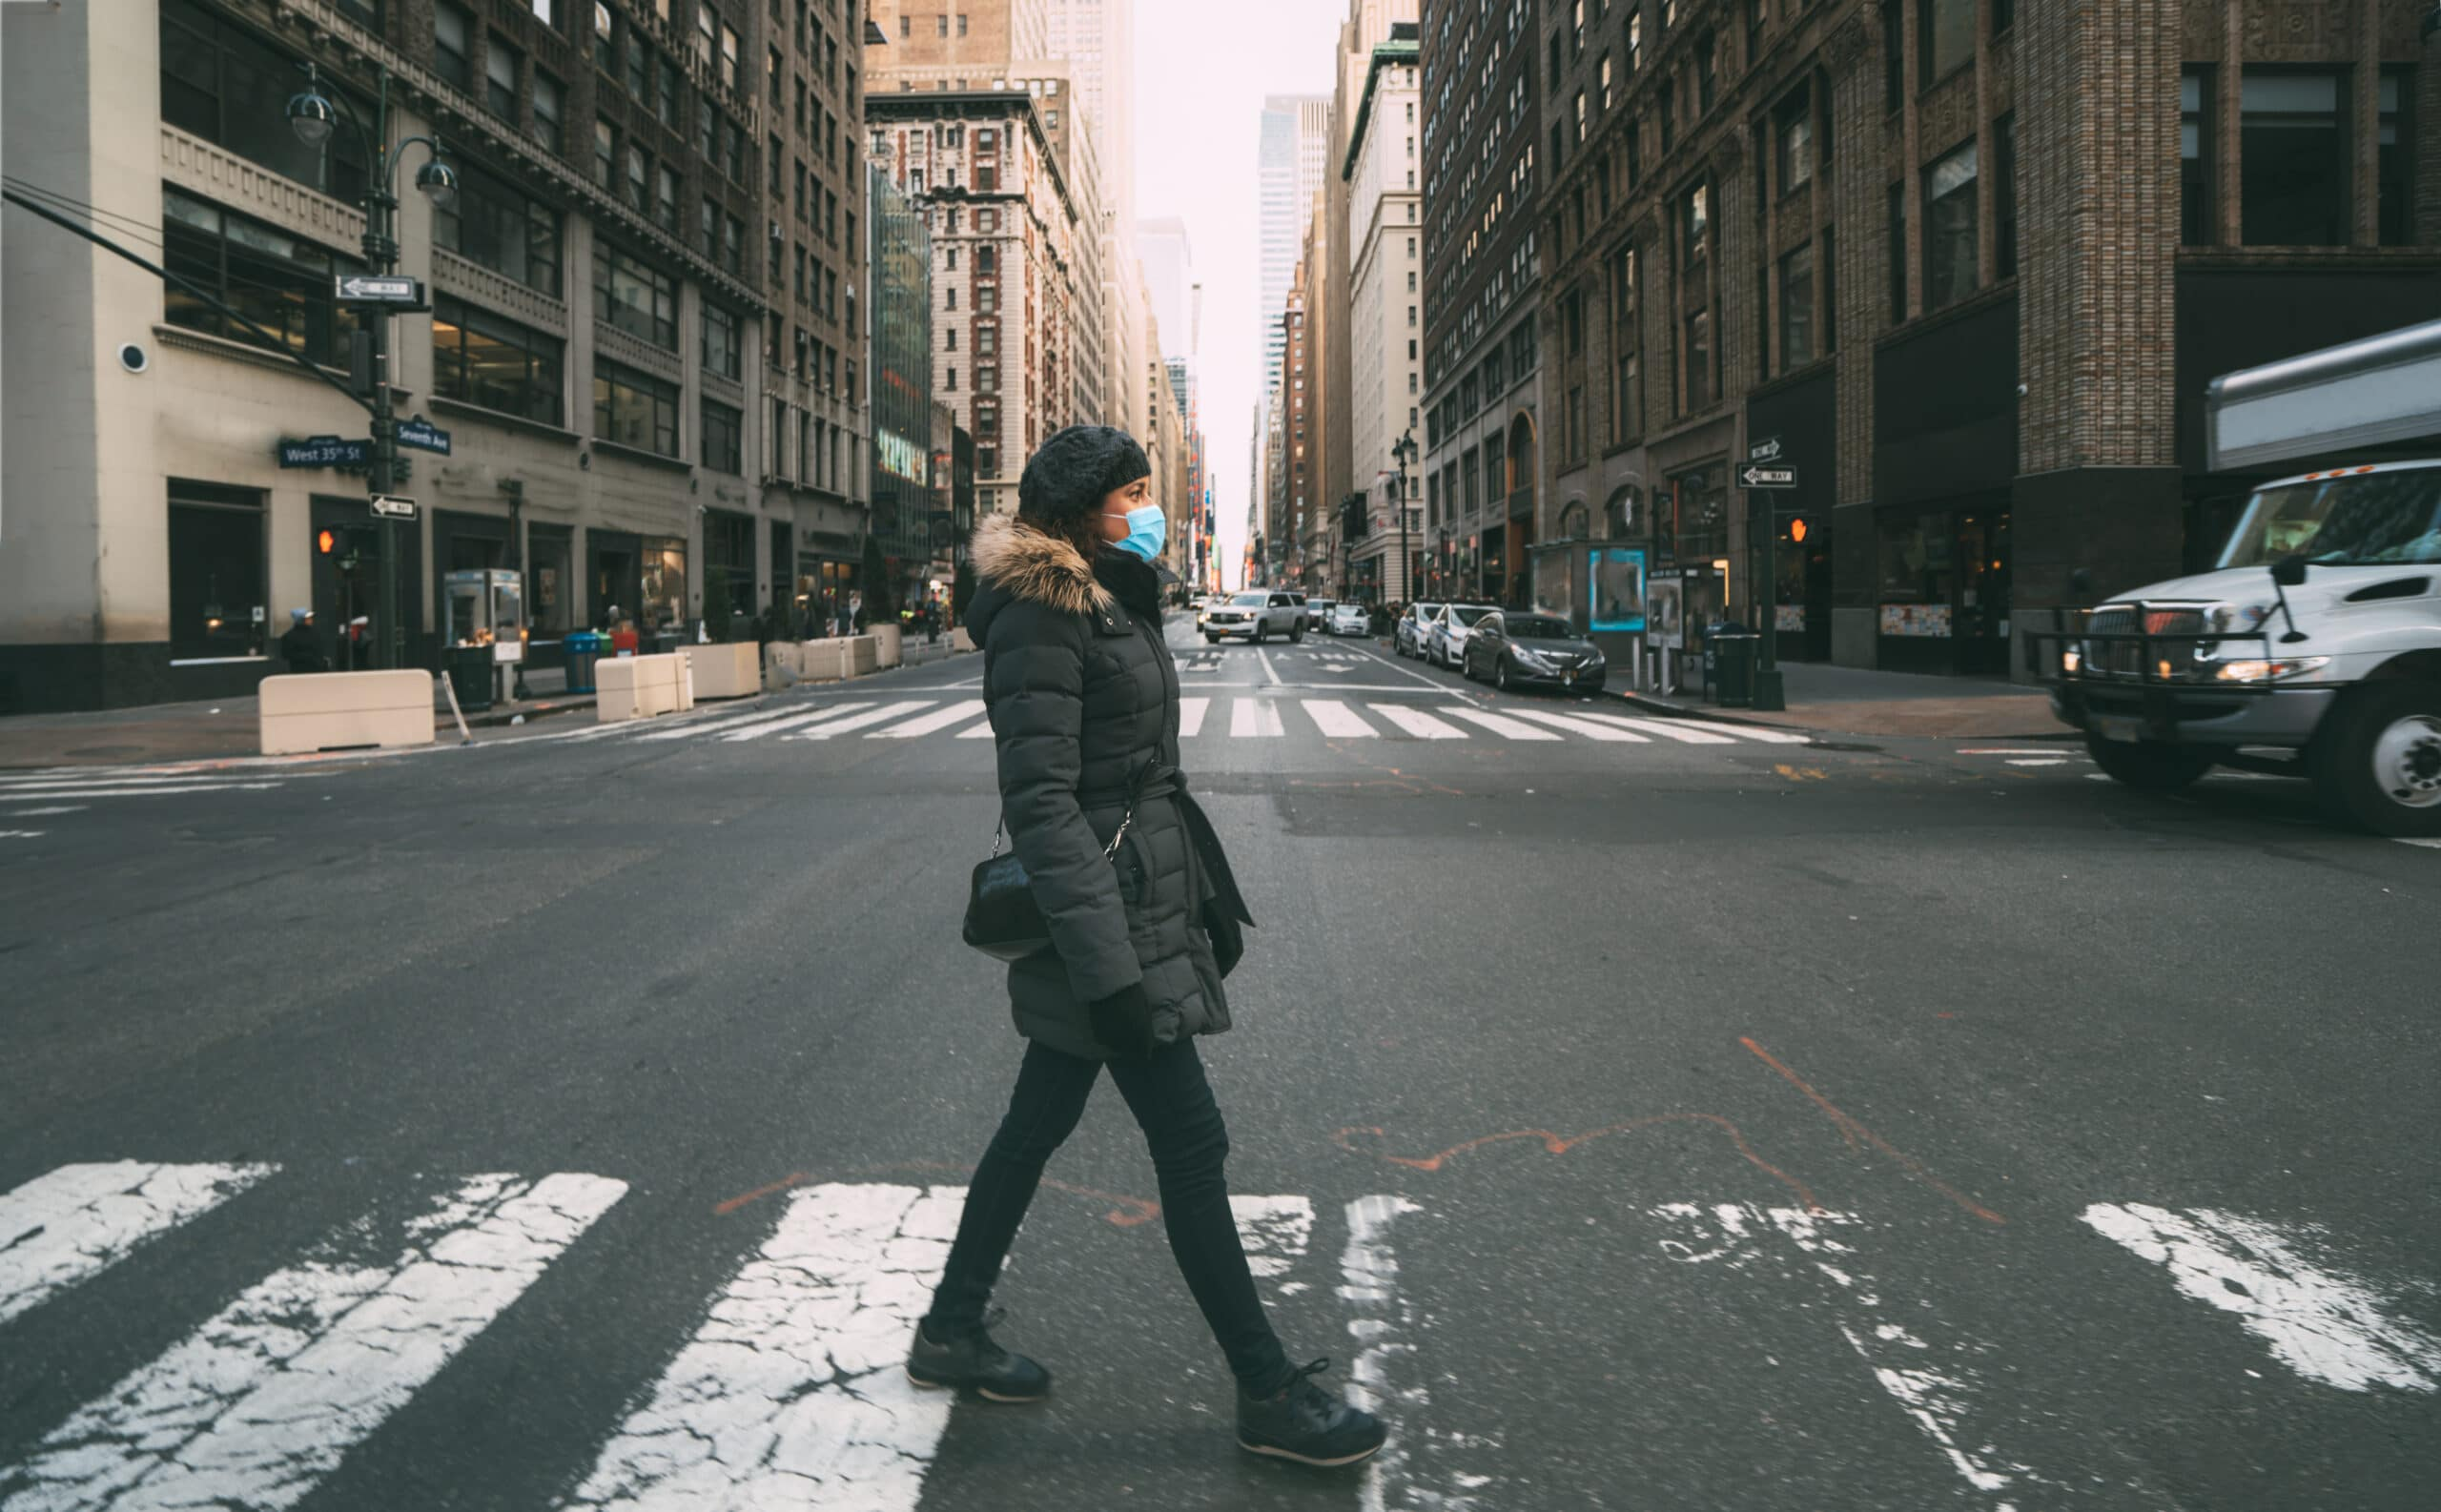 A woman wearing a face mask walks the city streets in New York.